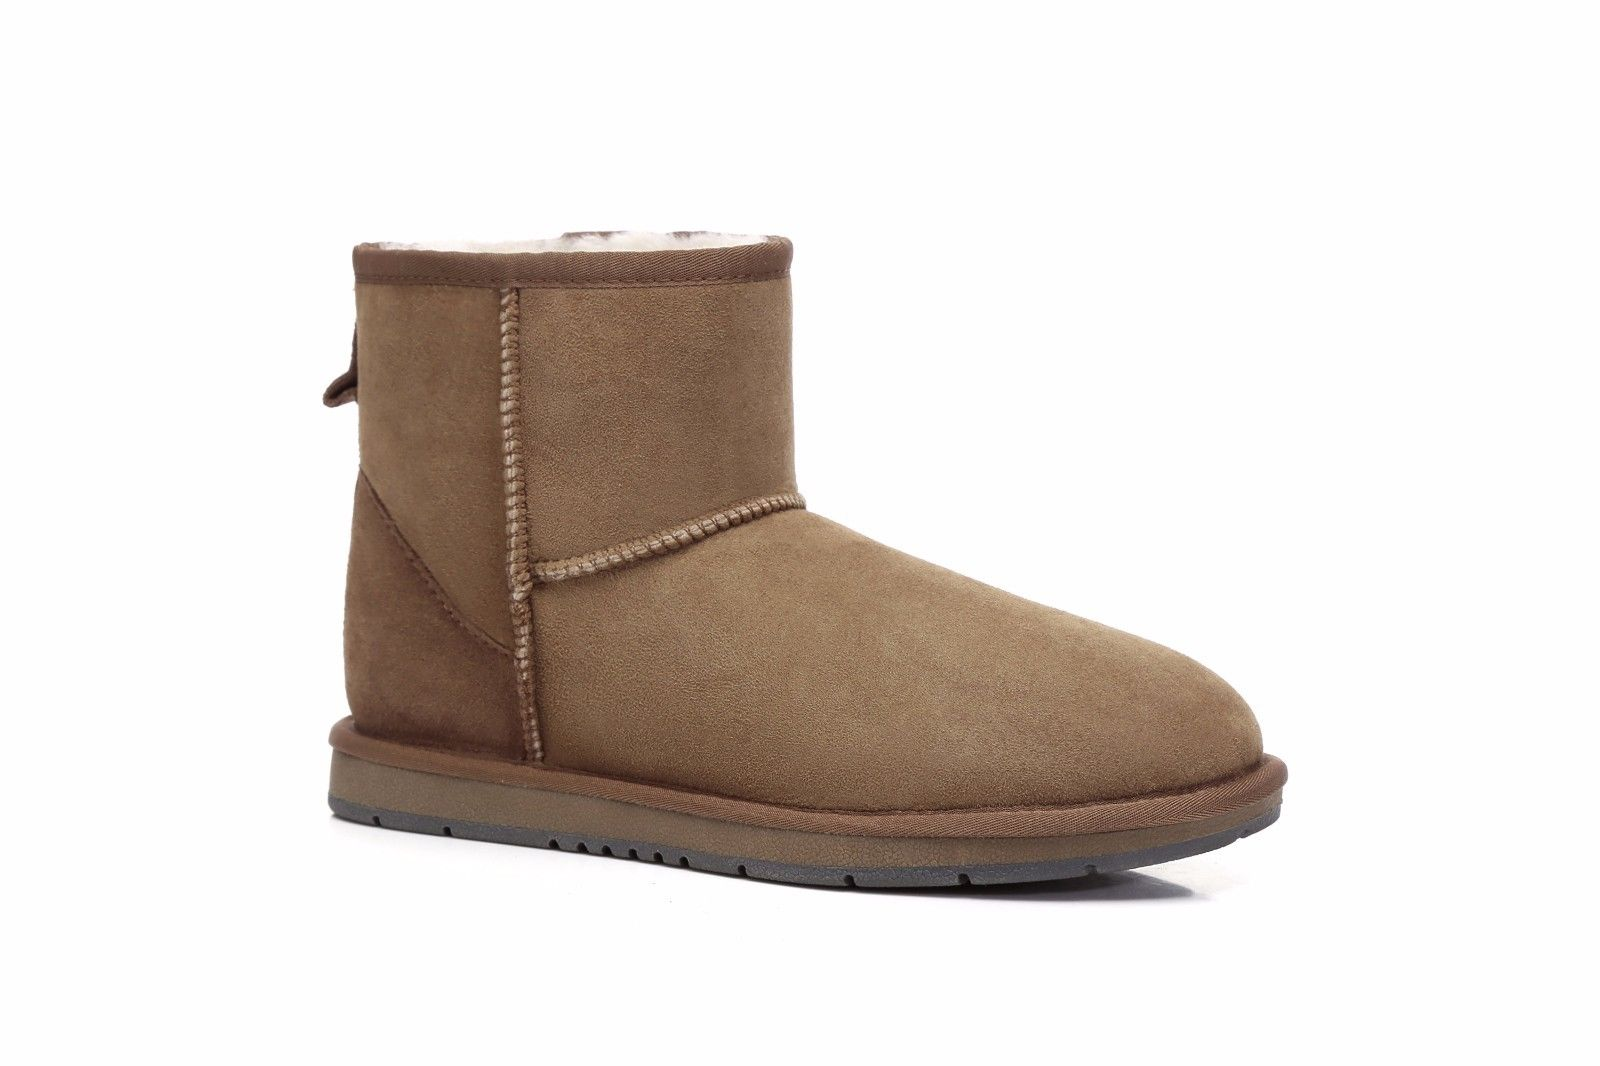 Ugg-Mini-Classic-Sheepskin-Ankle-Boots-Mens-Ladies-Black-Brown-Sizes-35-44-EU